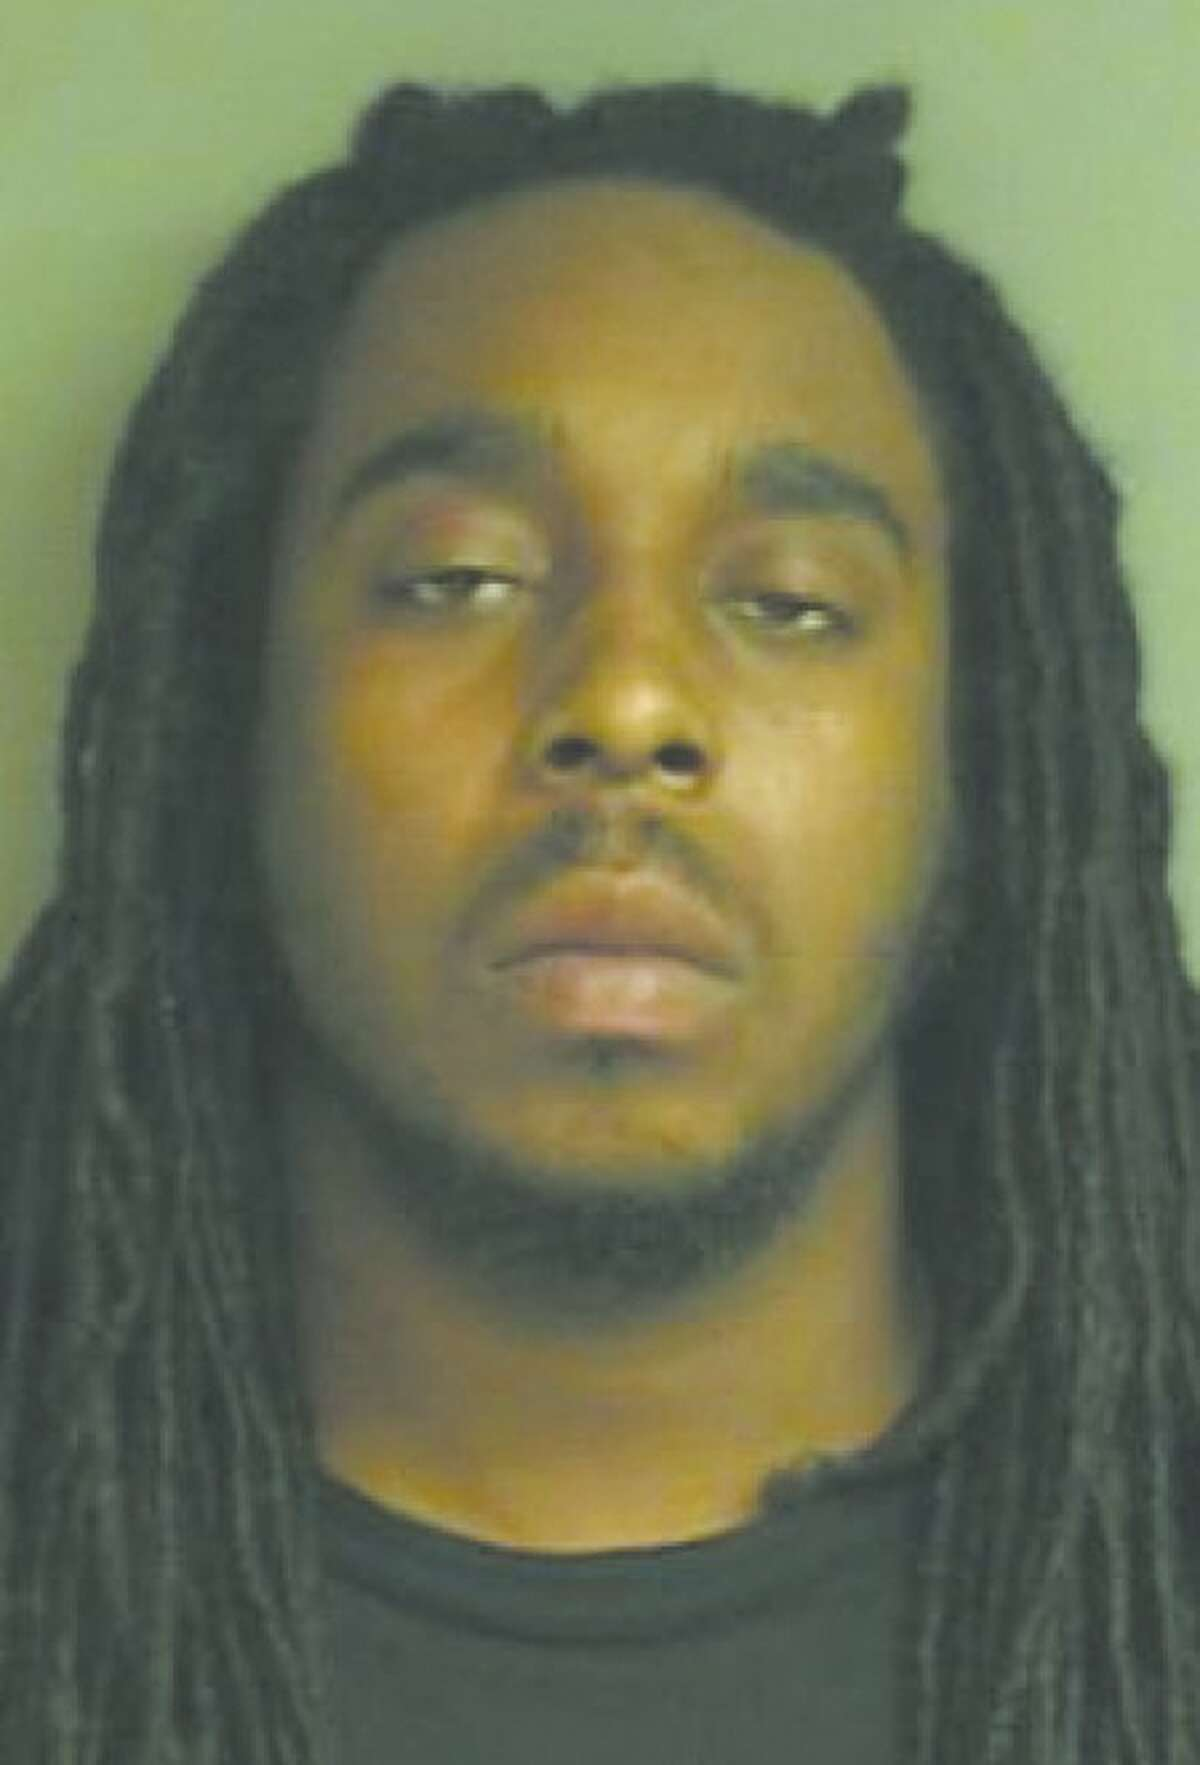 Suspect in homicide to have bond hearing